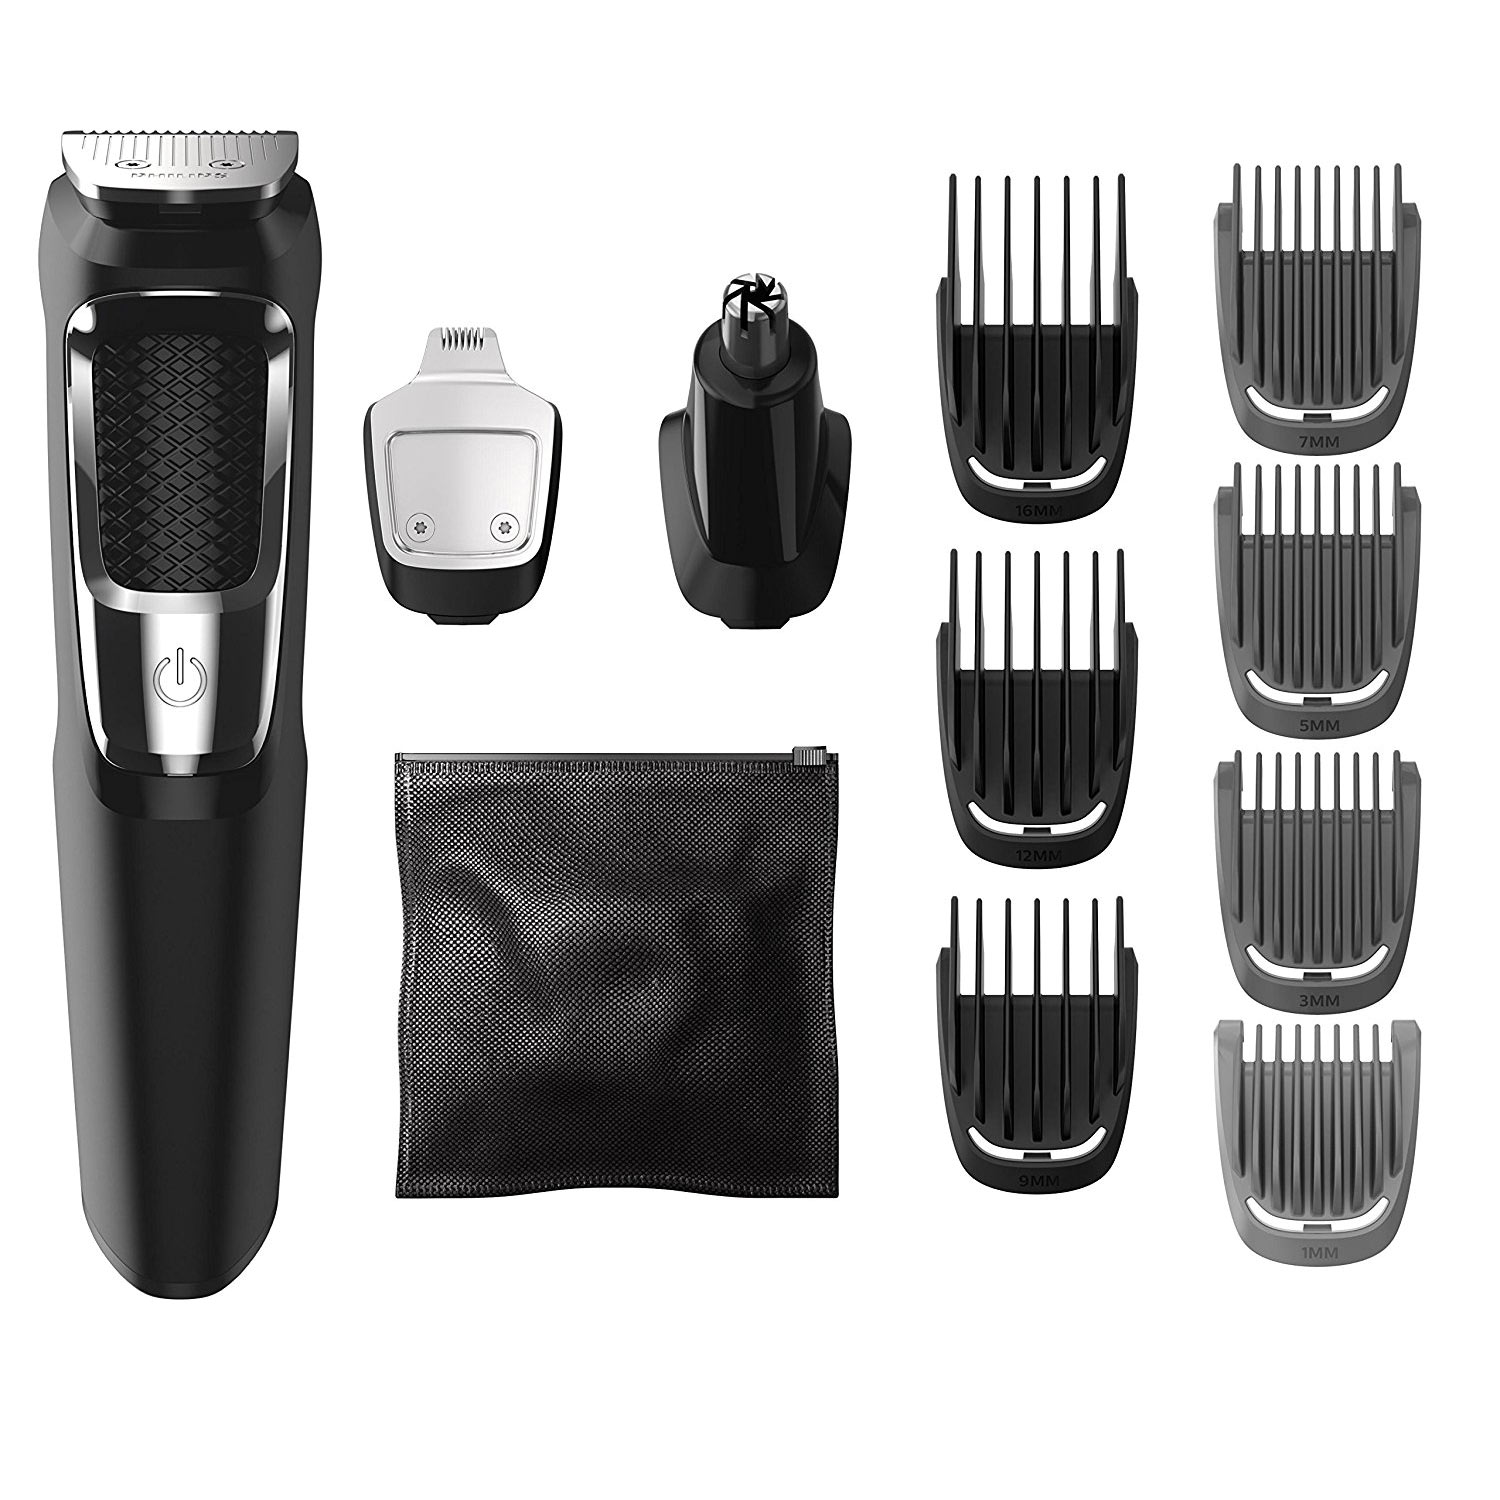 Norelco All-in-one Trimmer